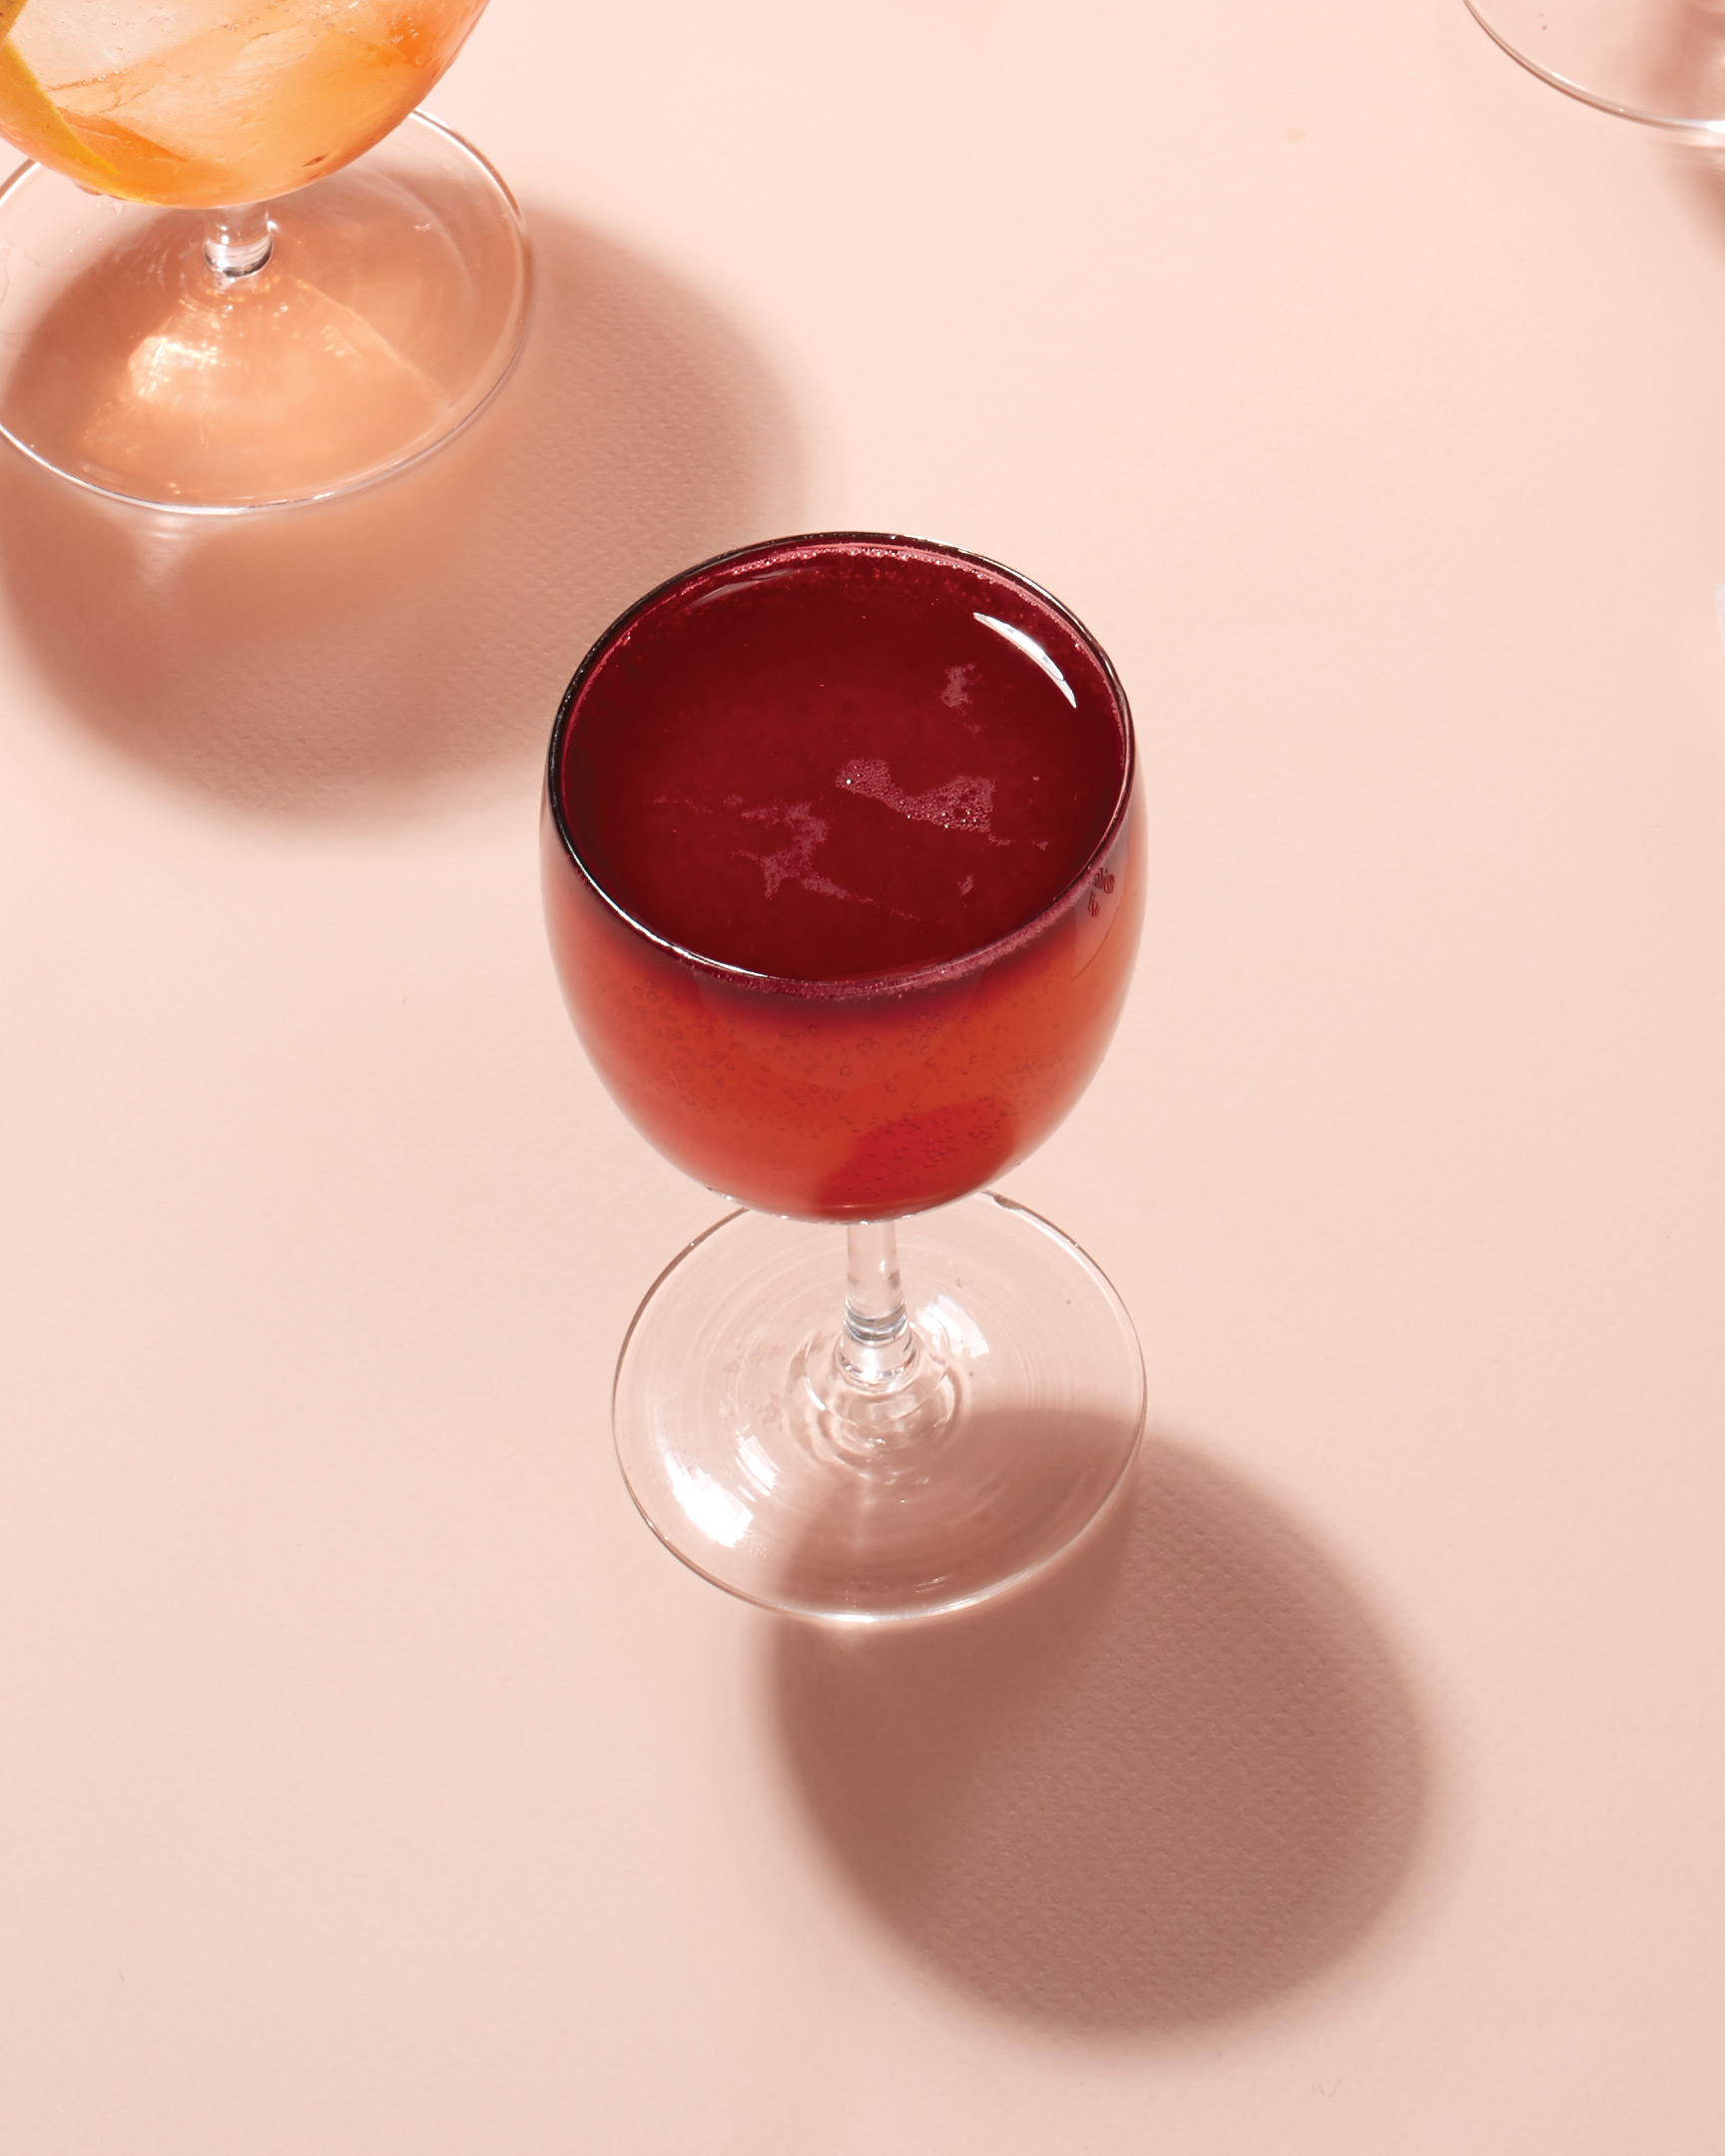 blush-berry-cocktails-new-york-sours-red-drink-047-d113029.jpg